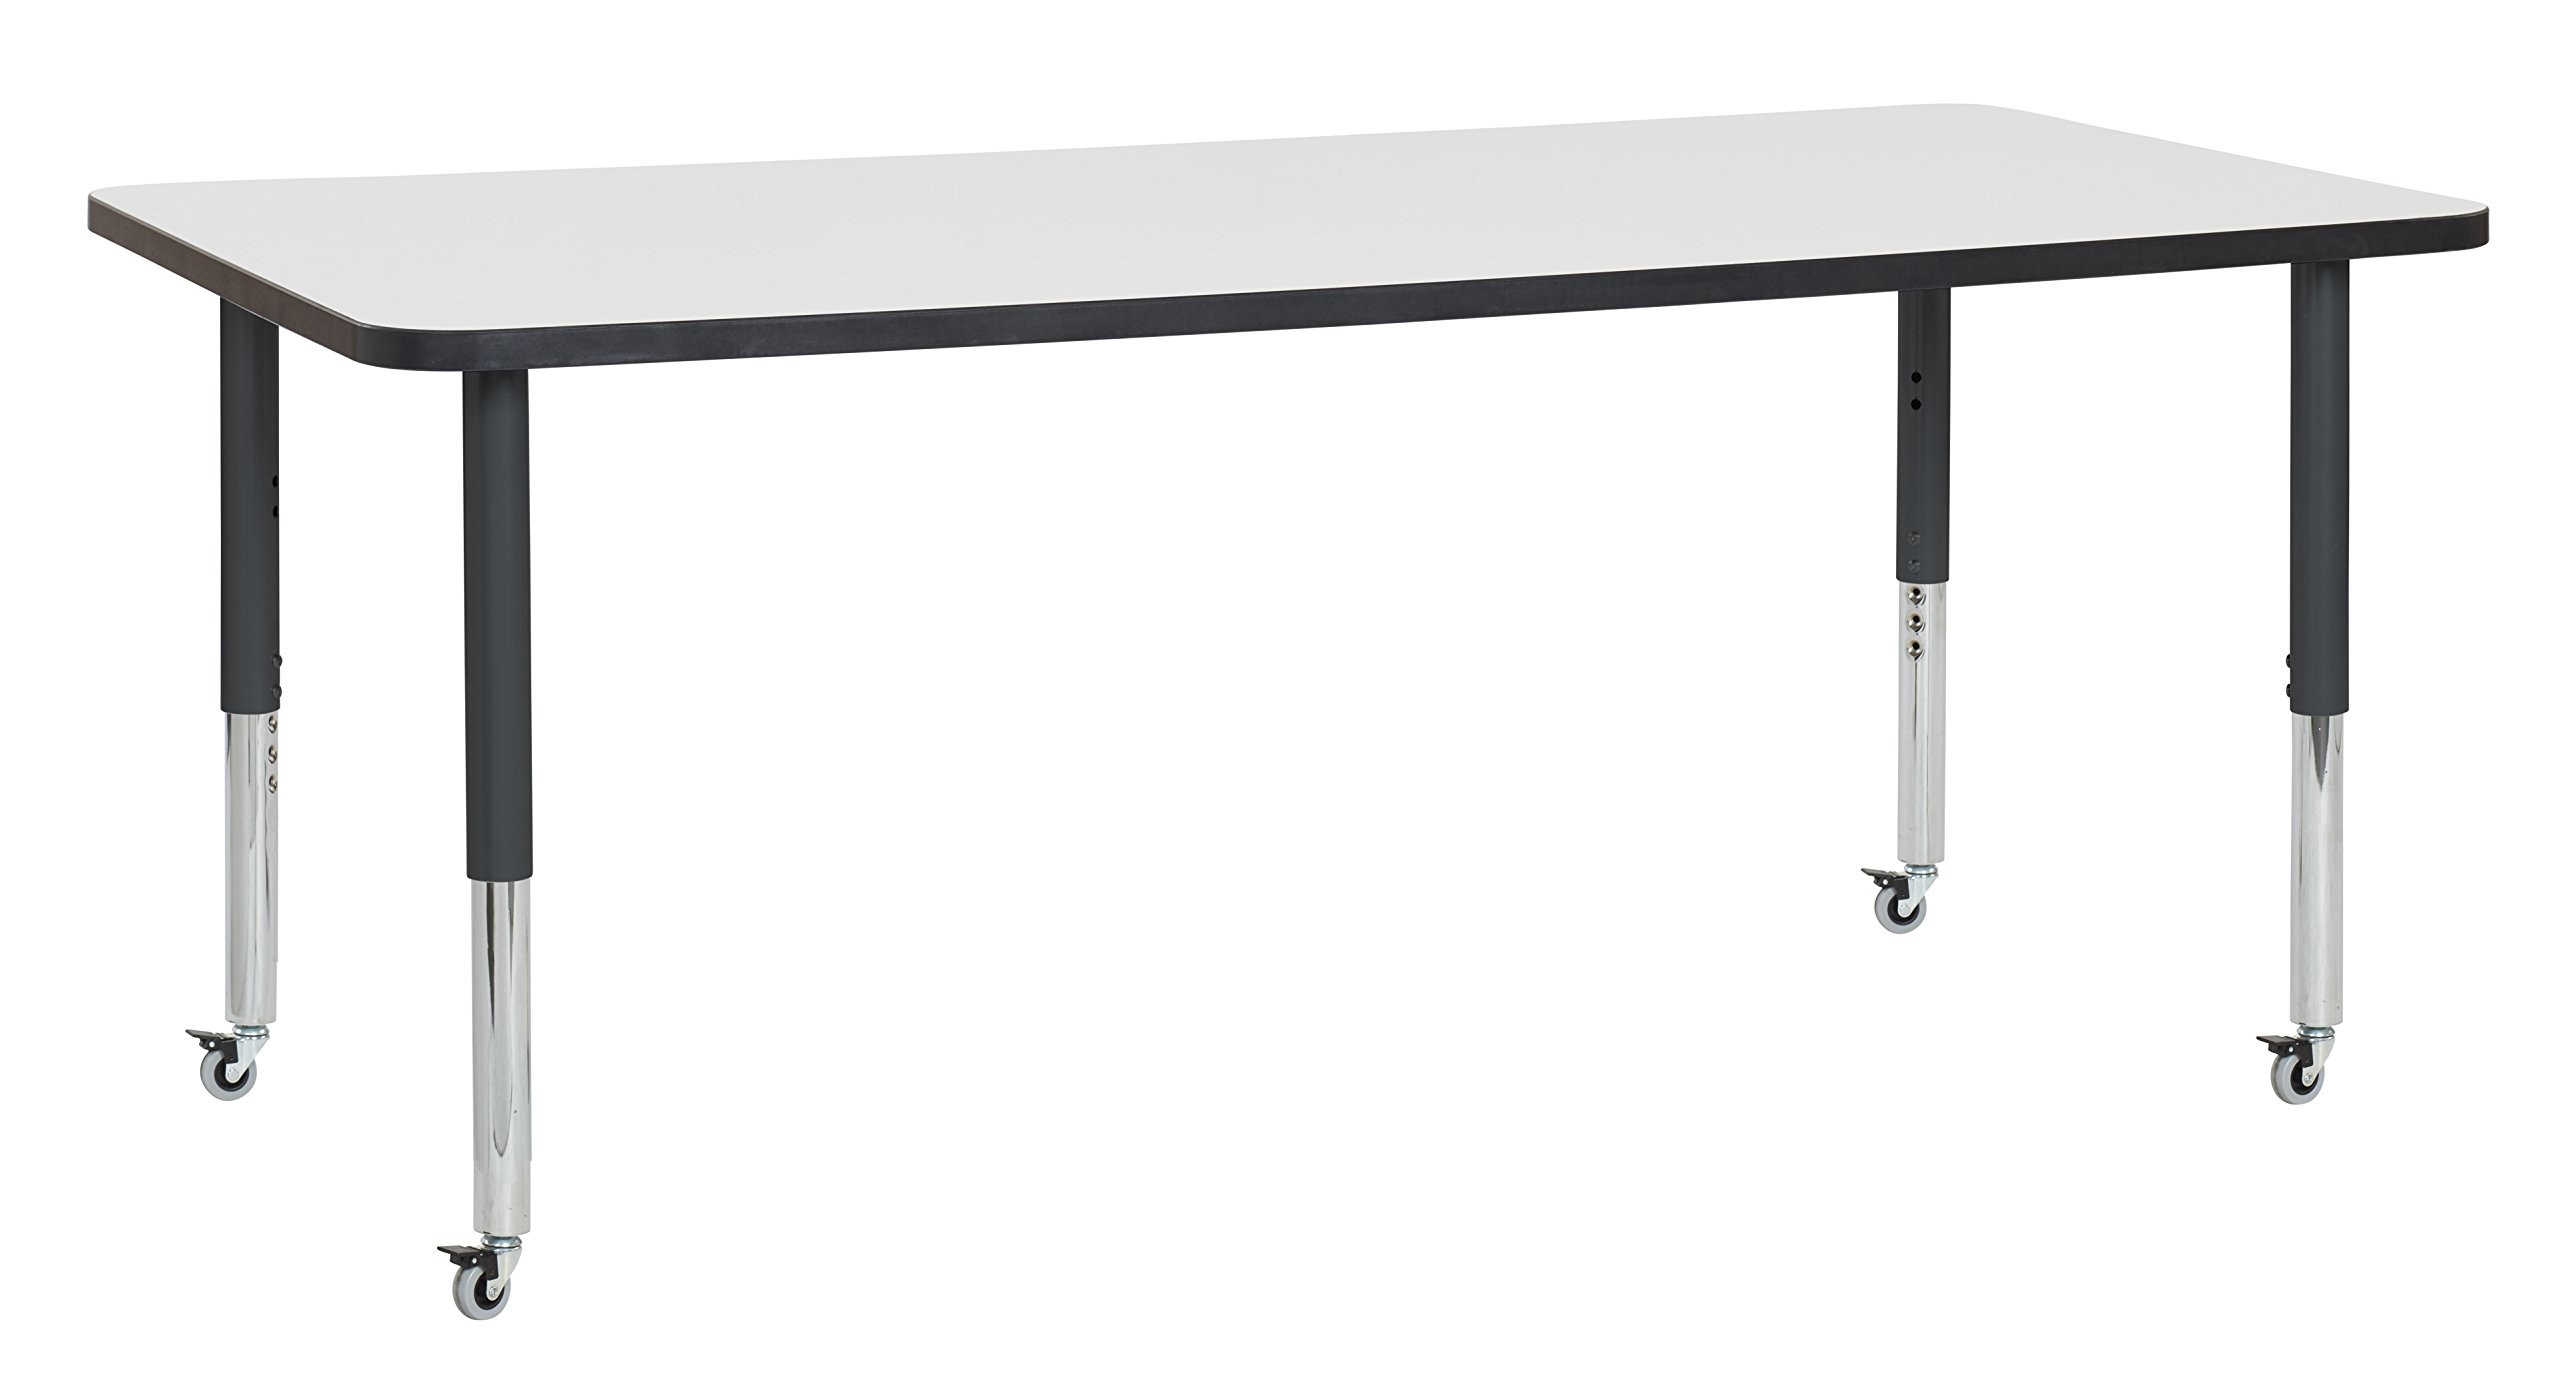 ECR4Kids Dry Erase 36'' x 72'' Rectangular Whiteboard School Activity Table, Super Legs w/ Glides and Casters, Adjustable Height 19-30 inch (Black)